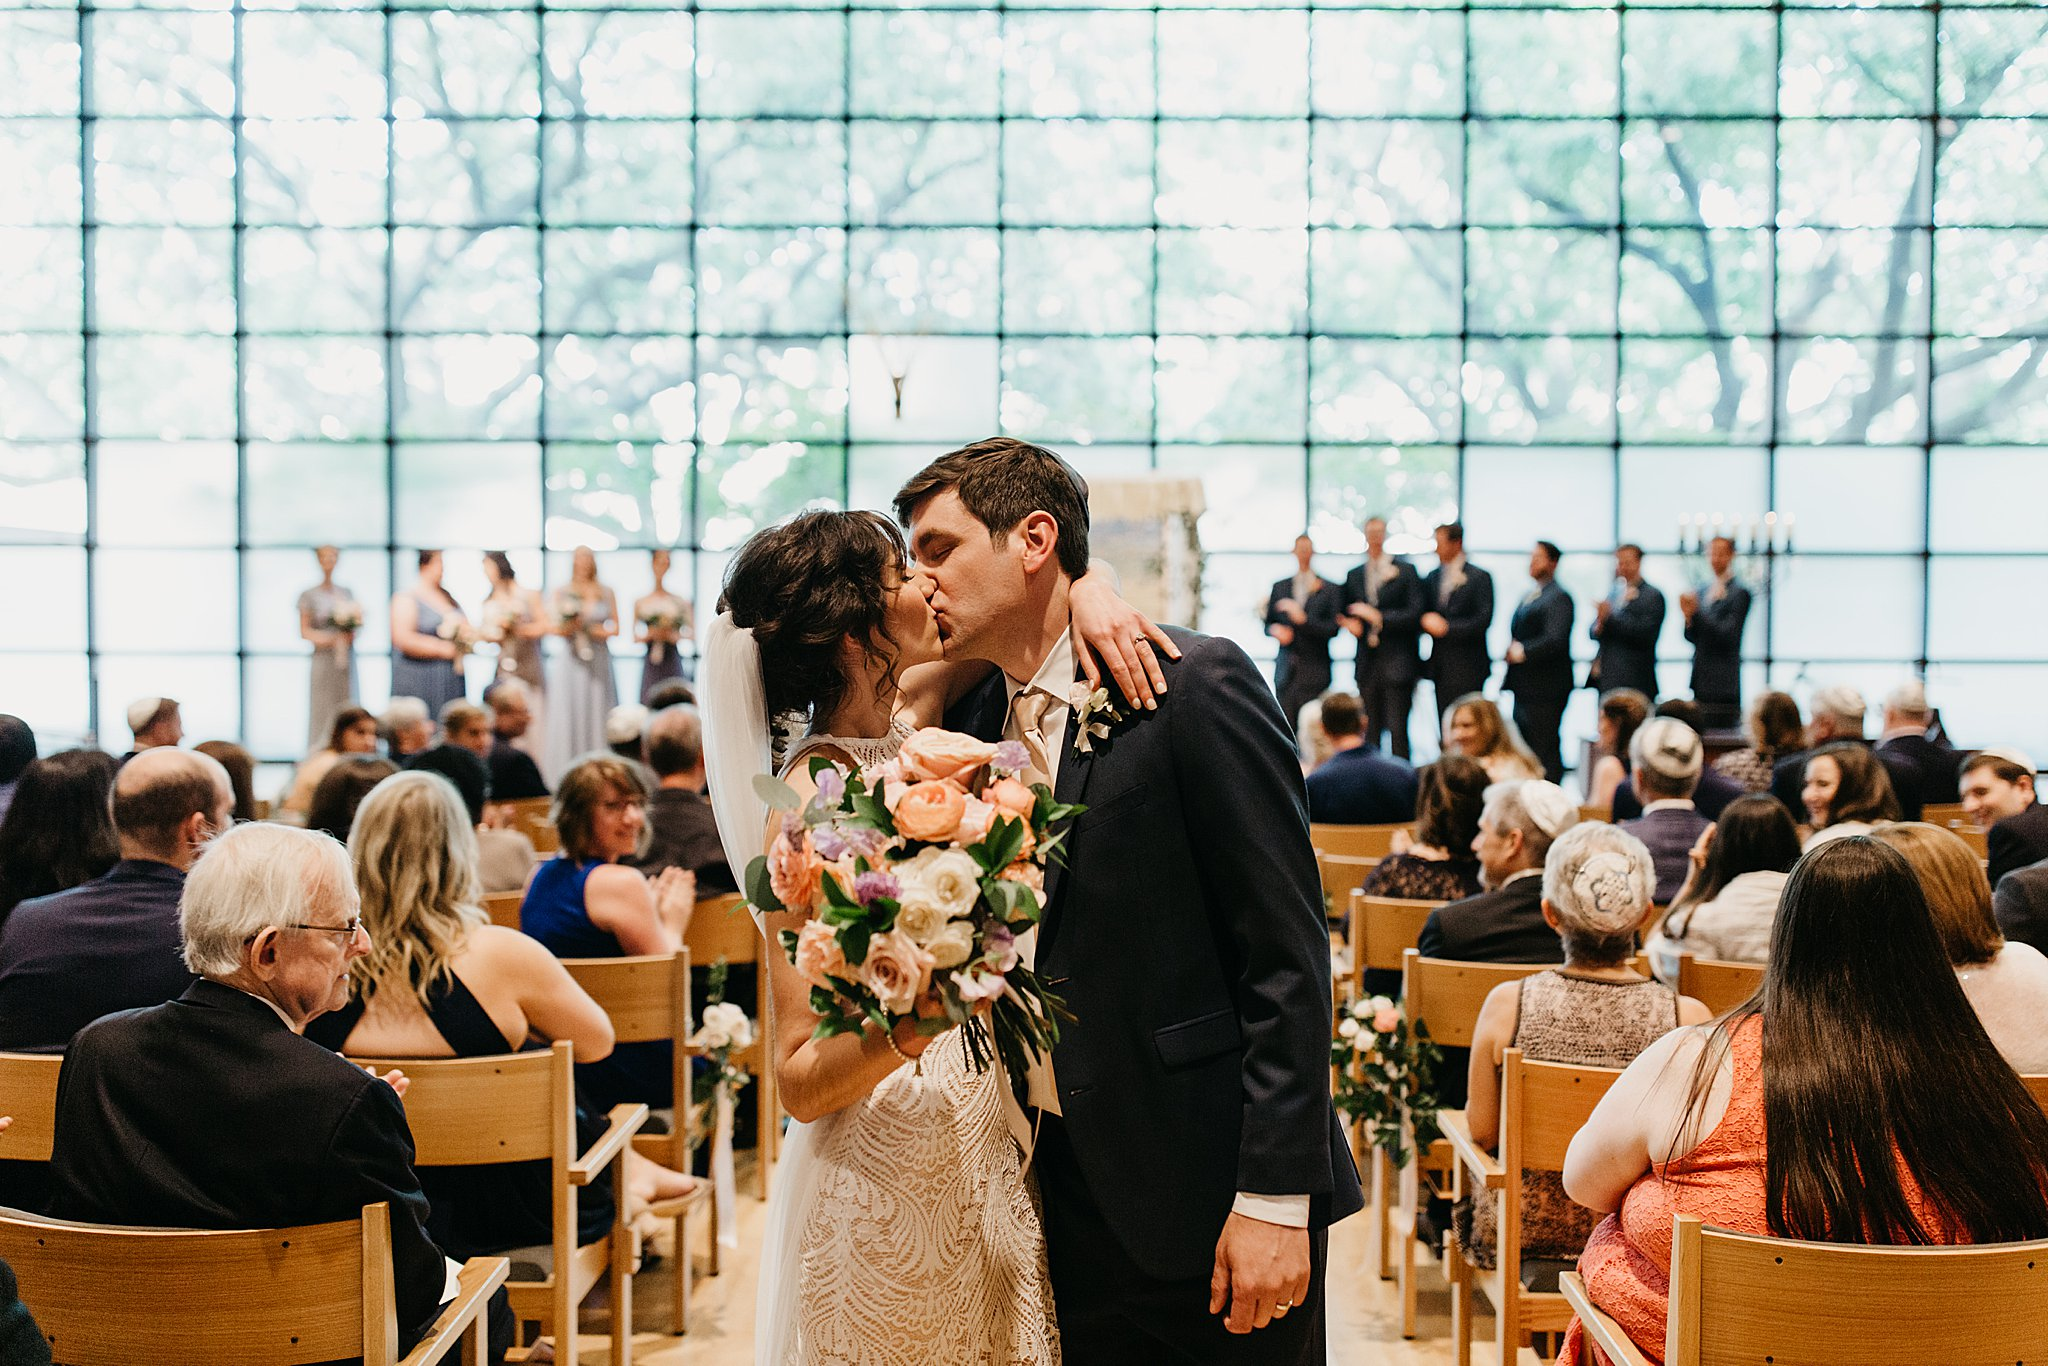 Wilderlove Co_Wedding Photographer_Industrial Wedding_Jewish Wedding_Dallas Texas Wedding_Brake & Clutch Warehouse_North Texas Photographer_0054.jpg